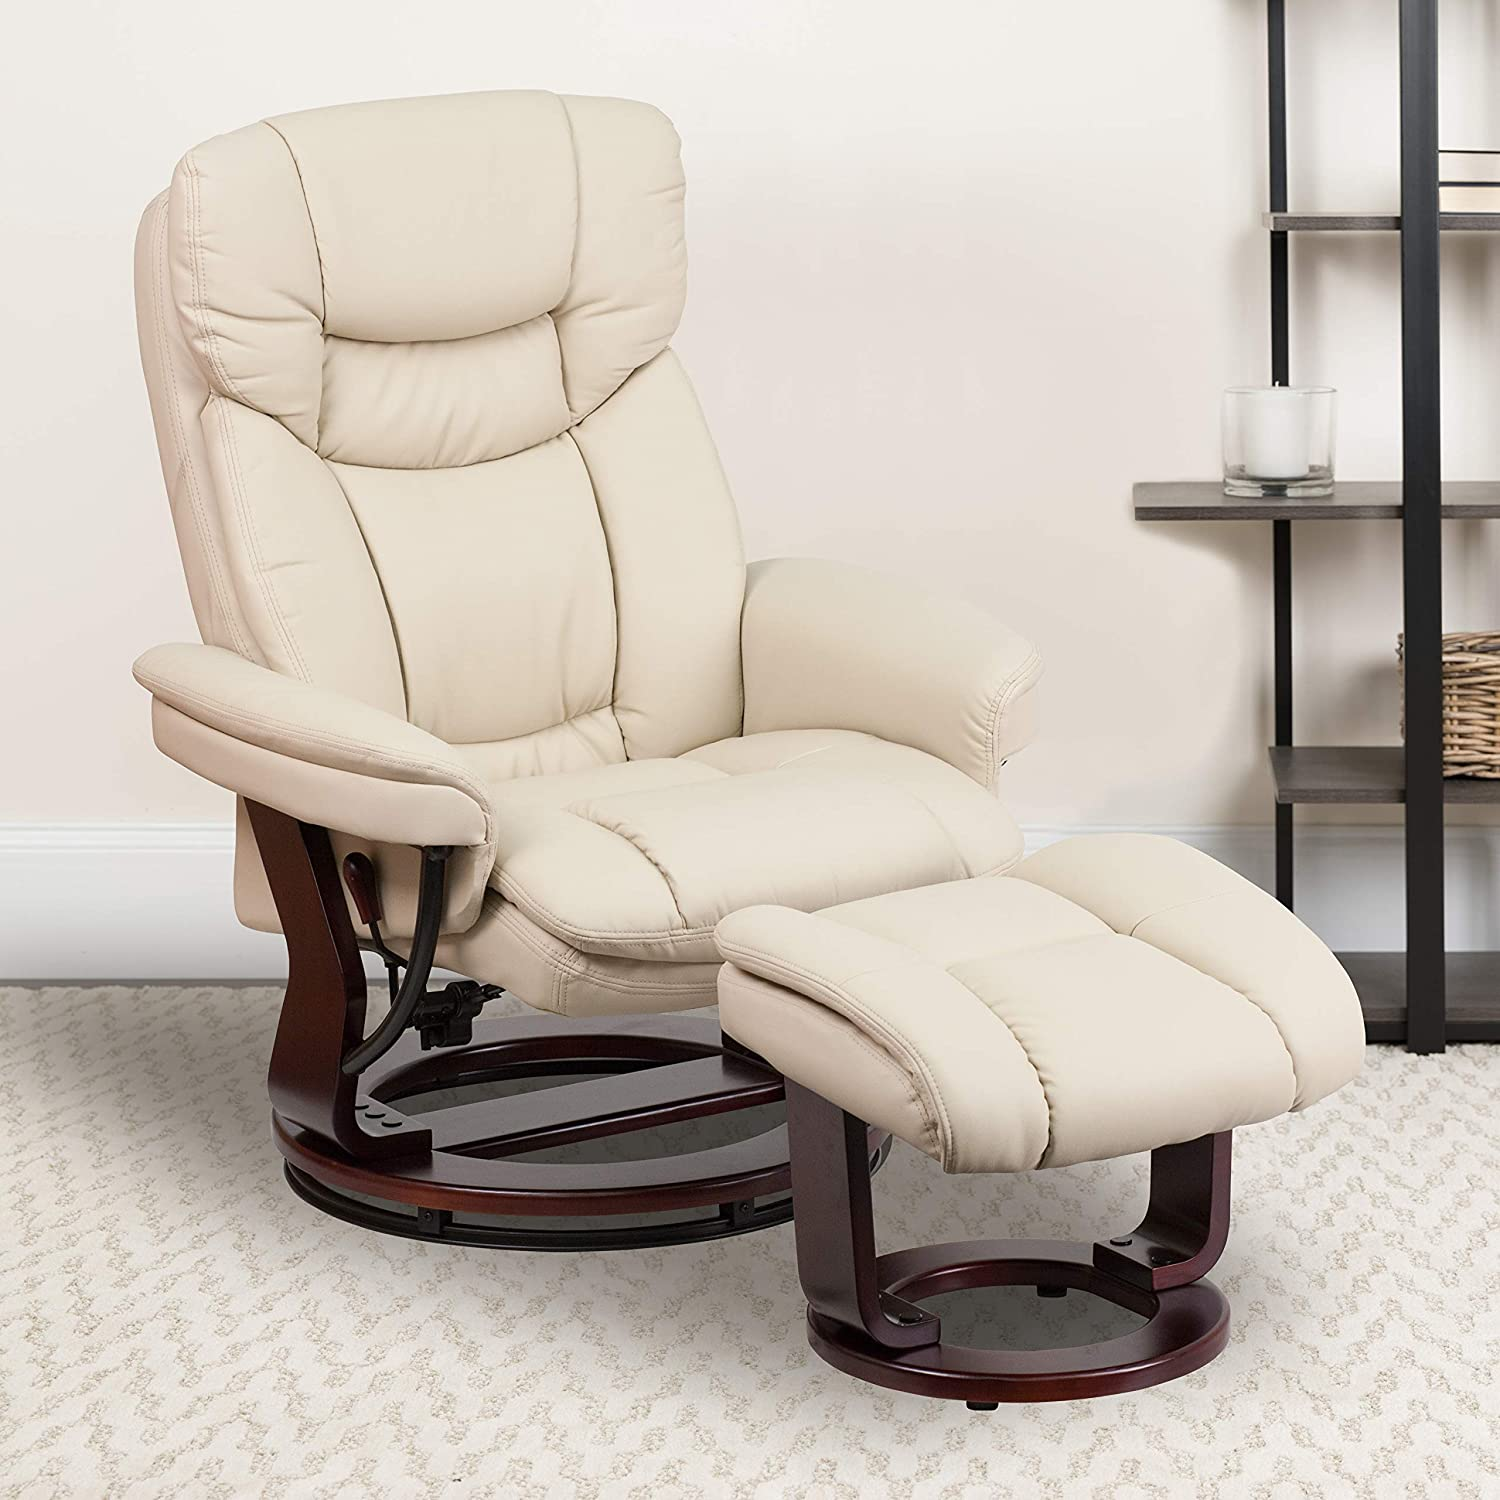 Flash Furniture Recliner Chair With Ottoman Beige Leathersoft Swivel Recliner Chair With Ottoman Footrest Furniture Decor